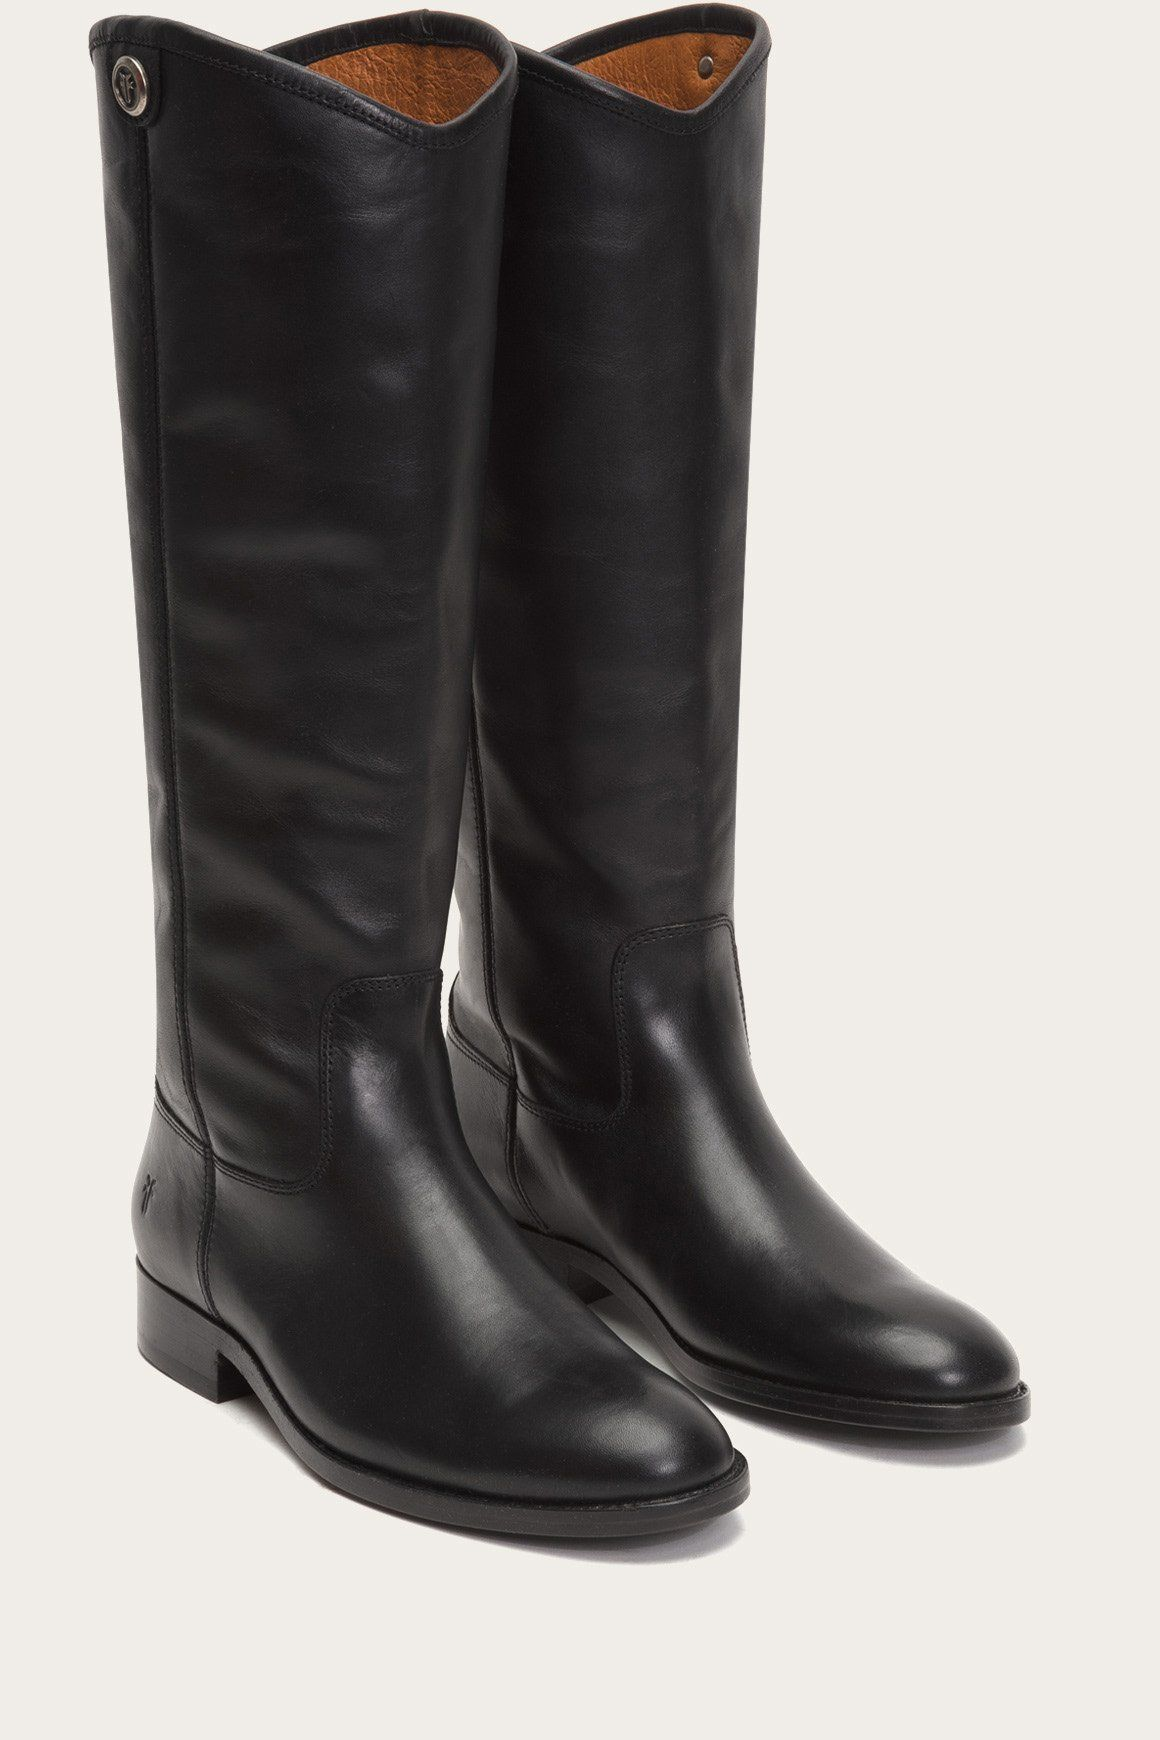 Frye Women's Melissa Button 2 Knee High Boot WgyduCNy1